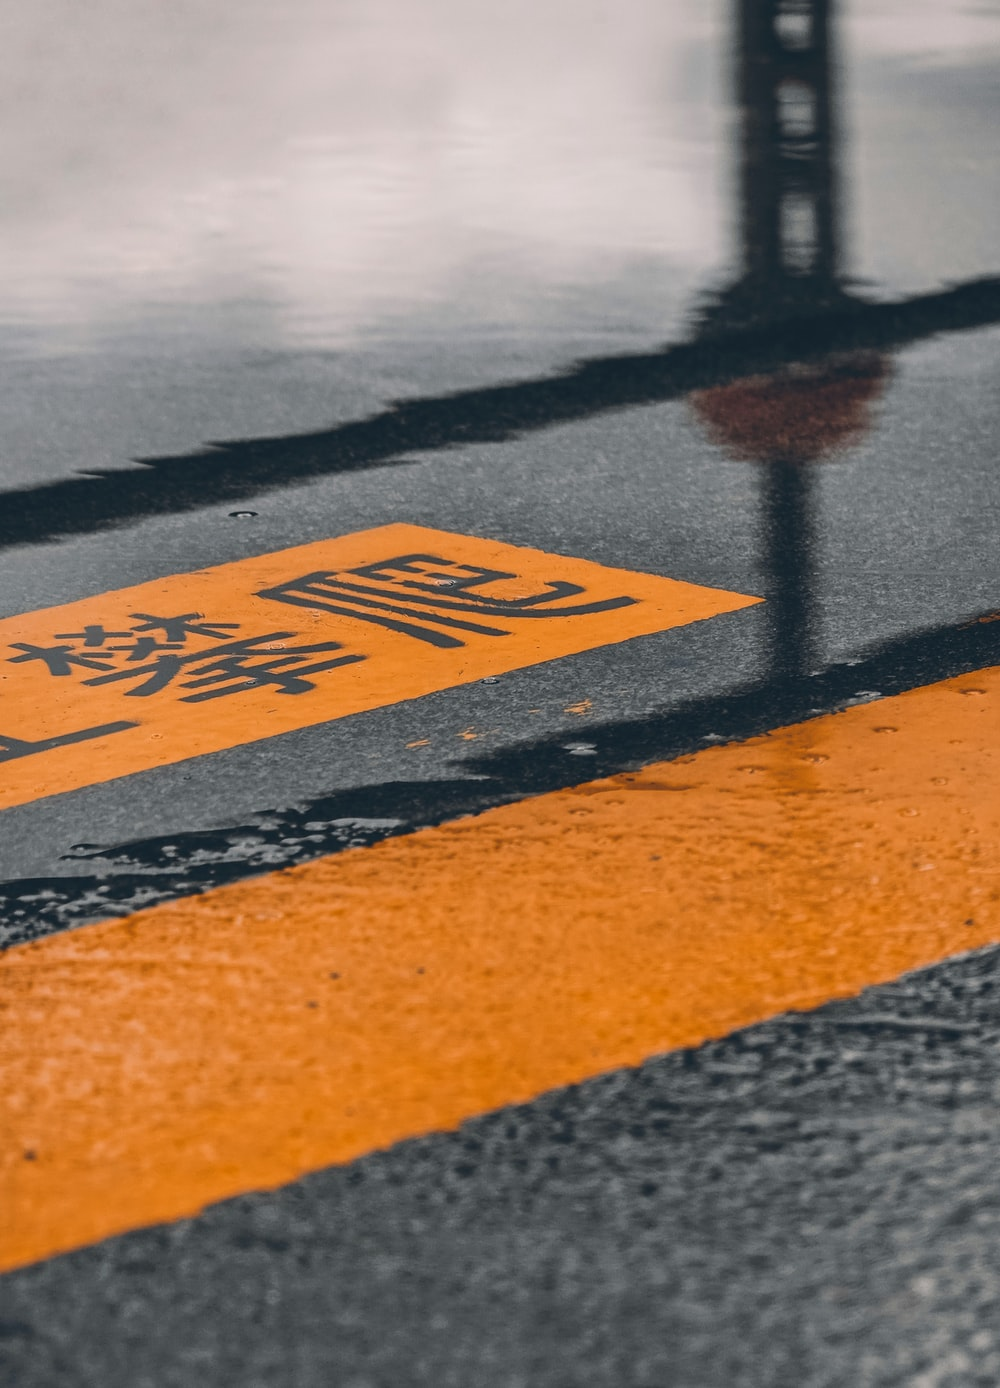 close-up photo of parking space